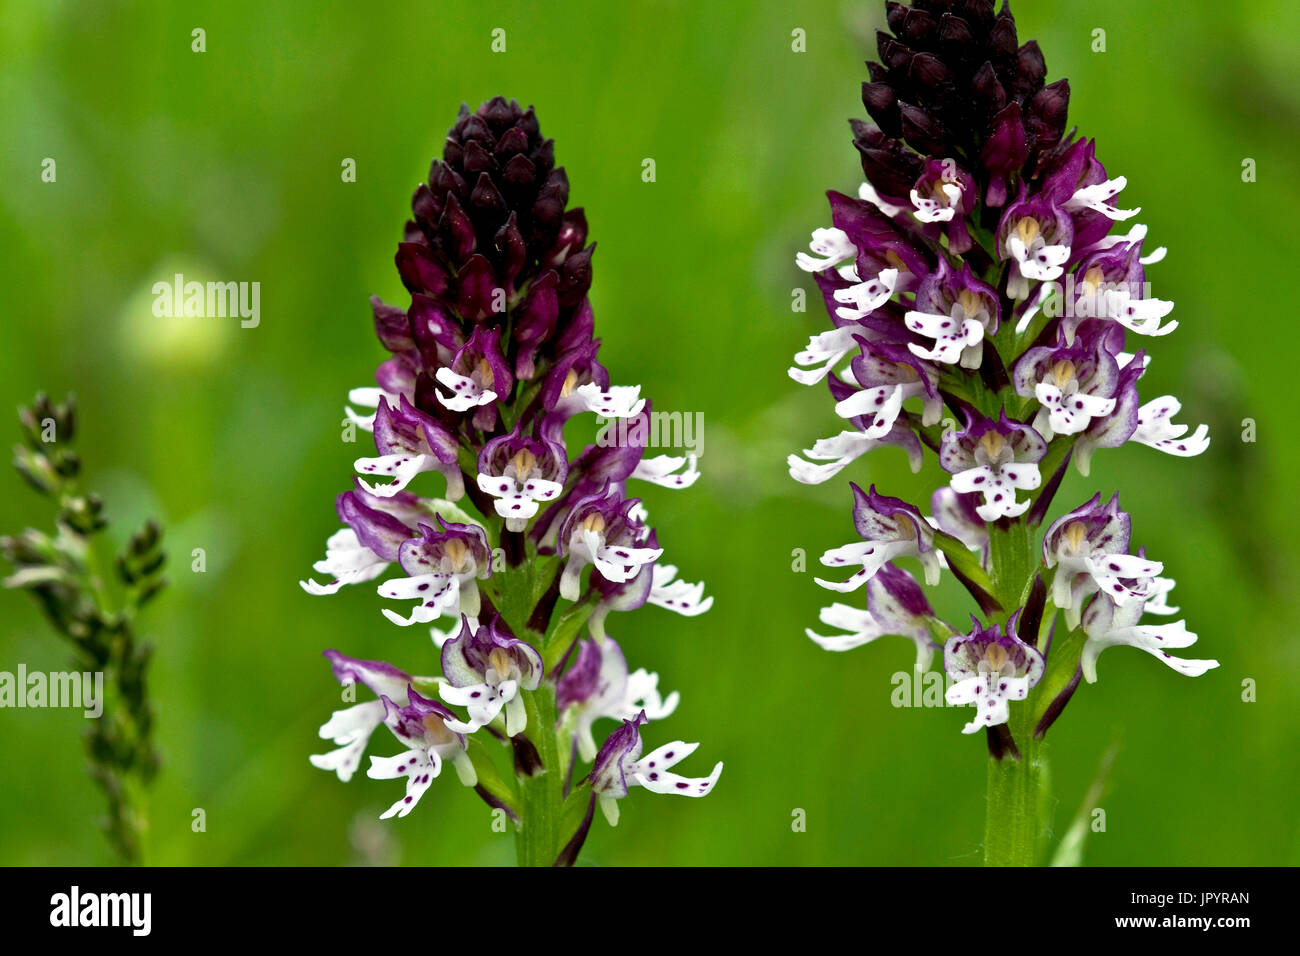 Burnt orchids in bloom in Catalonia - Spain - Stock Image